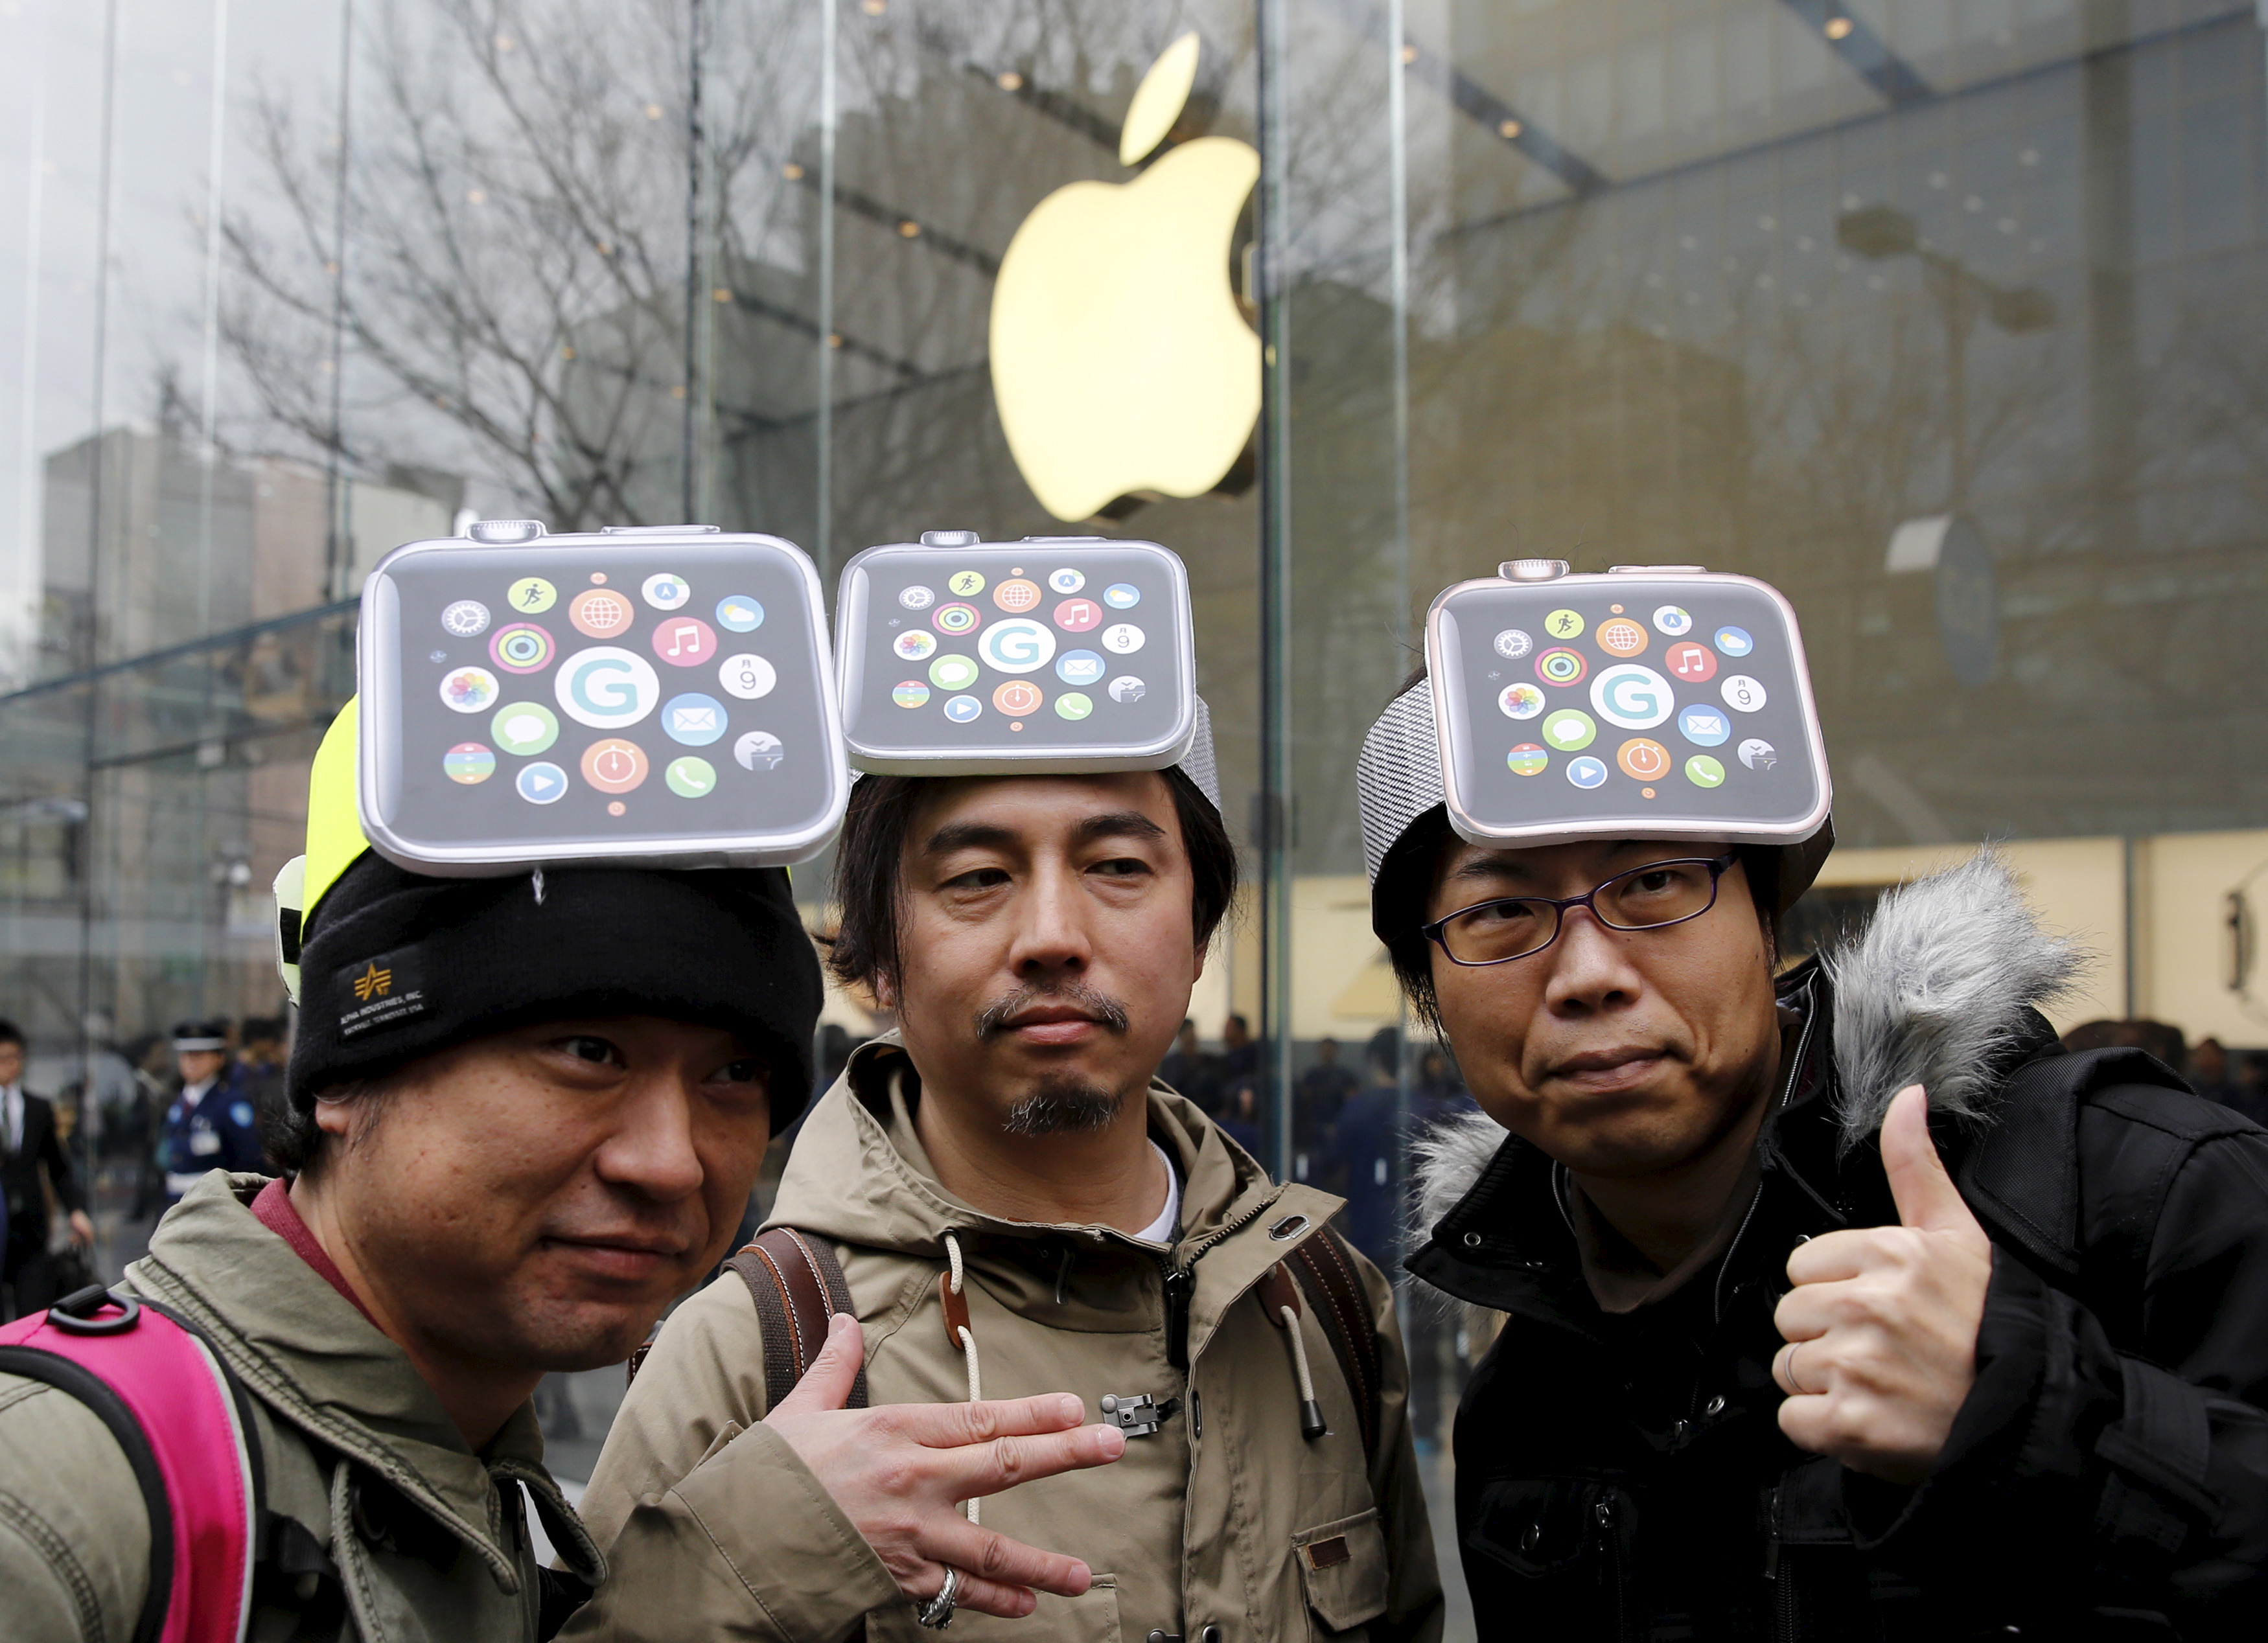 Men wearing cardboard Apple Watches on their heads pose for photos before it goes on display in front of the Apple Store in Tokyo's Omotesando shopping district.